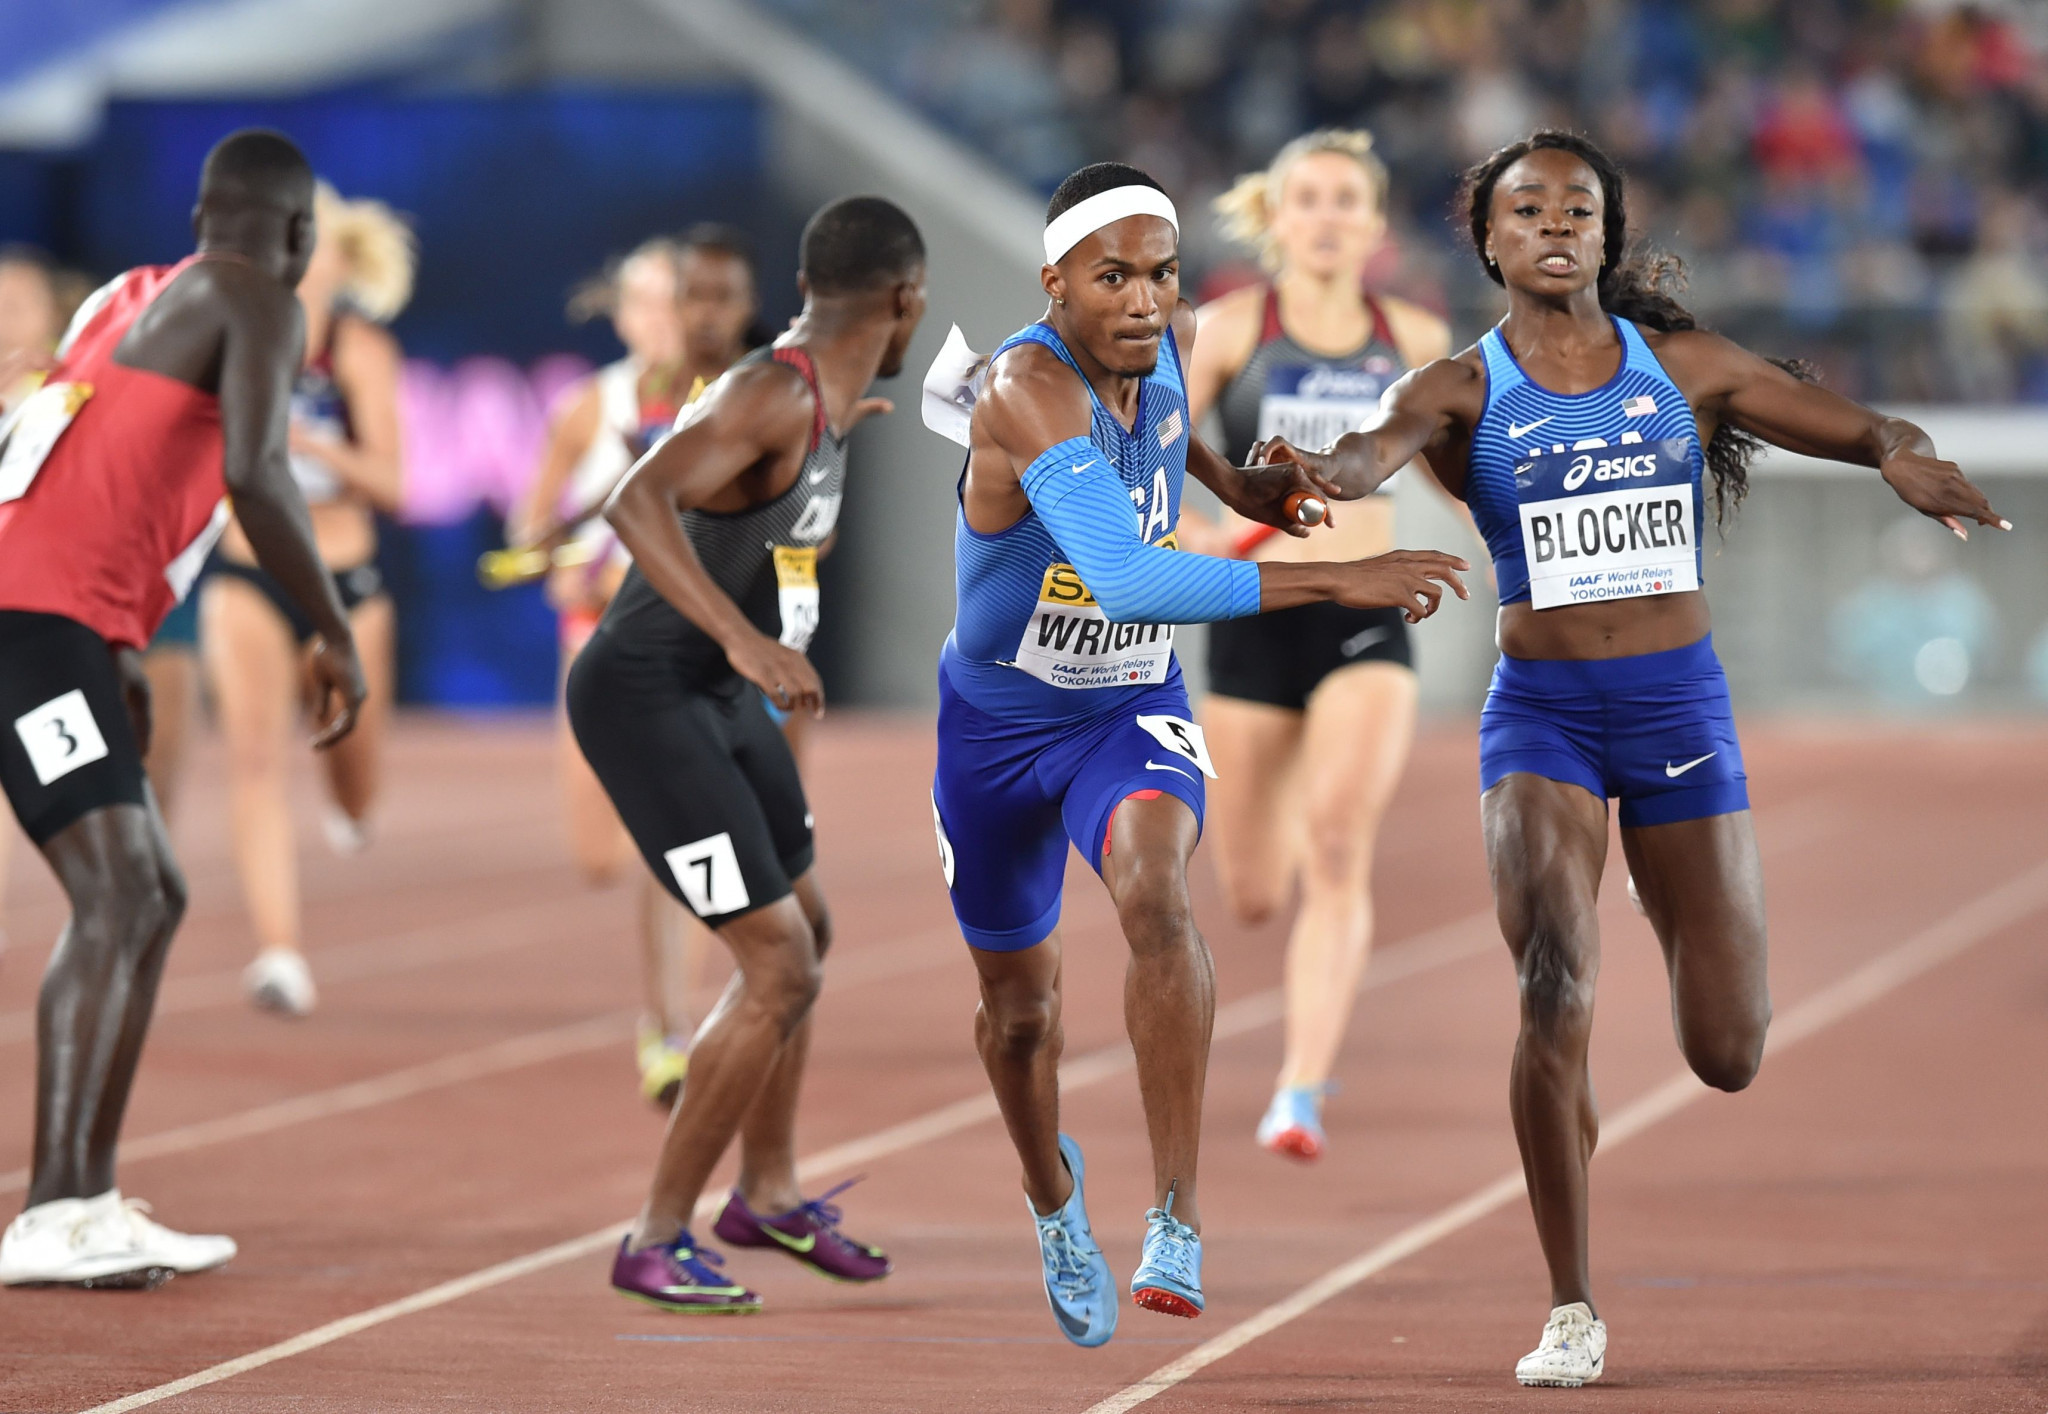 Dontavius Wright and Jasmine Blocker of the United States played their part in a victory in the mixed 4x400 metres relay final at the IAAF World Relays in Yokohama ©Getty Images